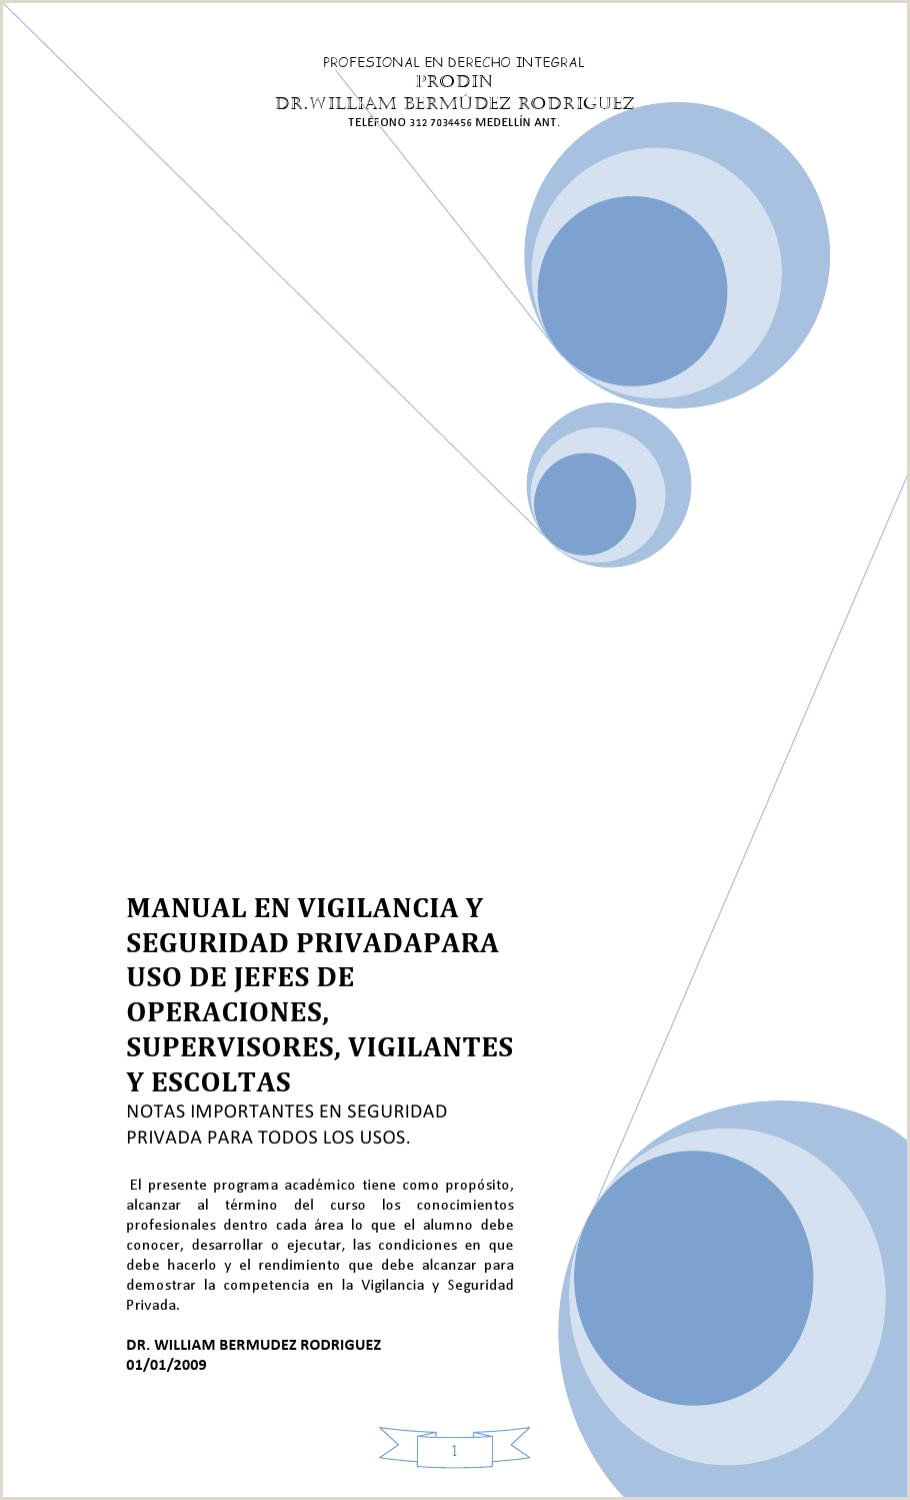 Hoja De Vida Minerva 1003 Azul Descargar Manual De Vigilancia Y Seguridad Privada by William Bermudez